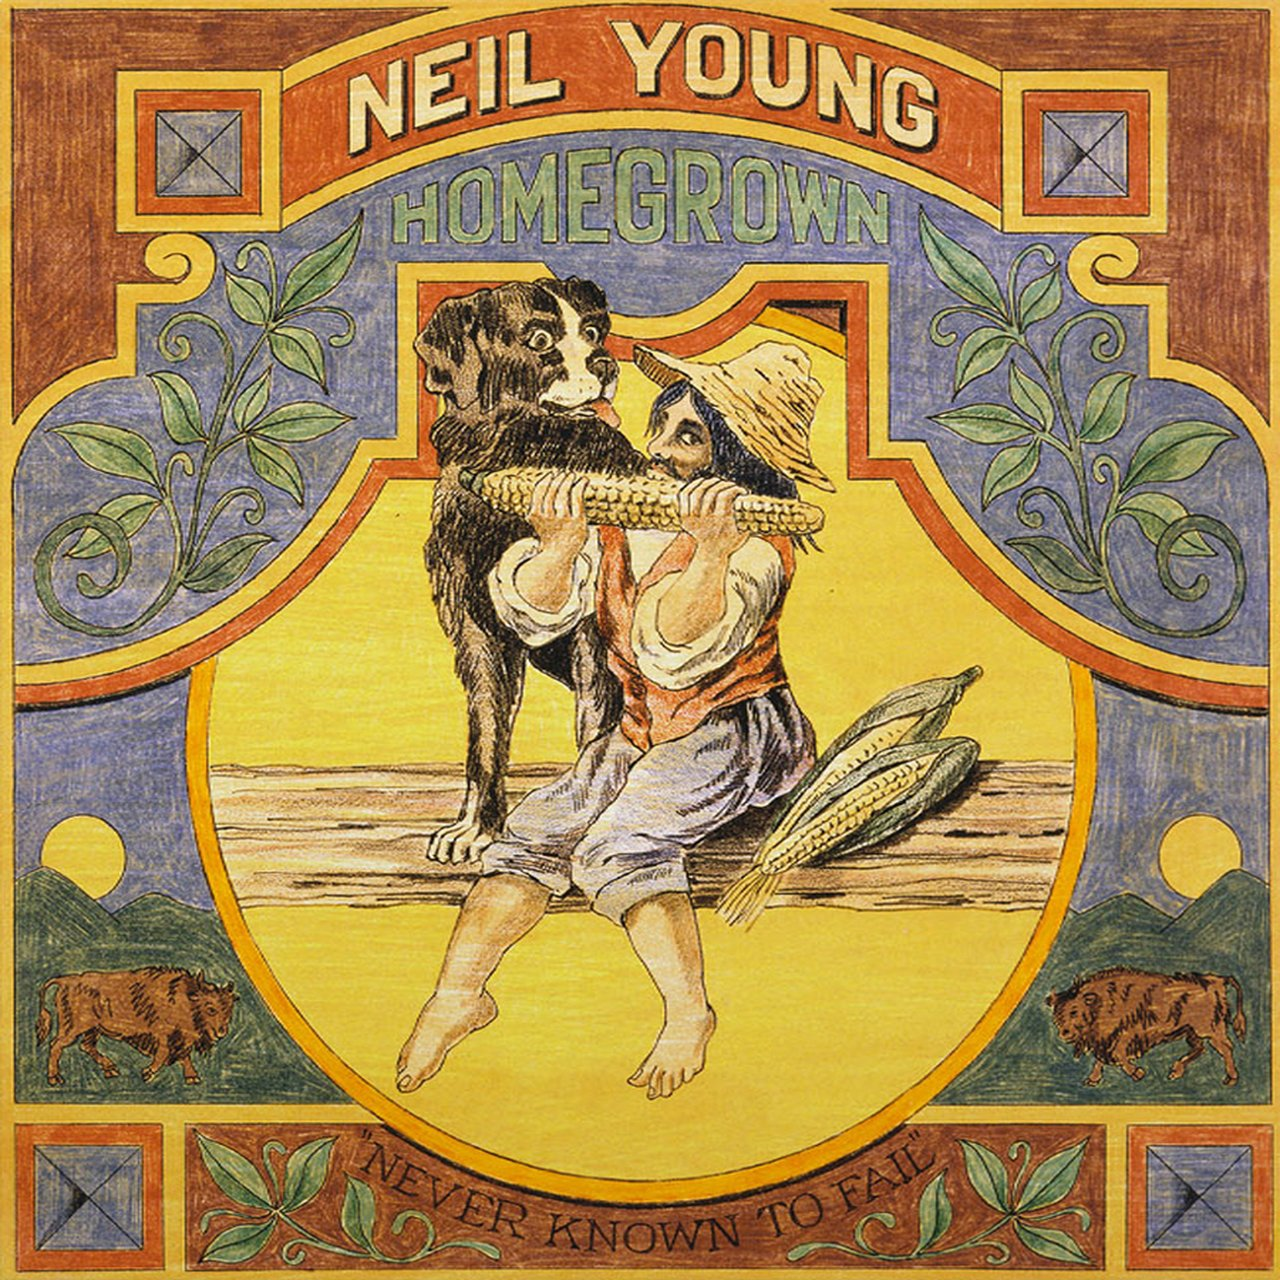 Neil Young Homegrown Never Known To Fail